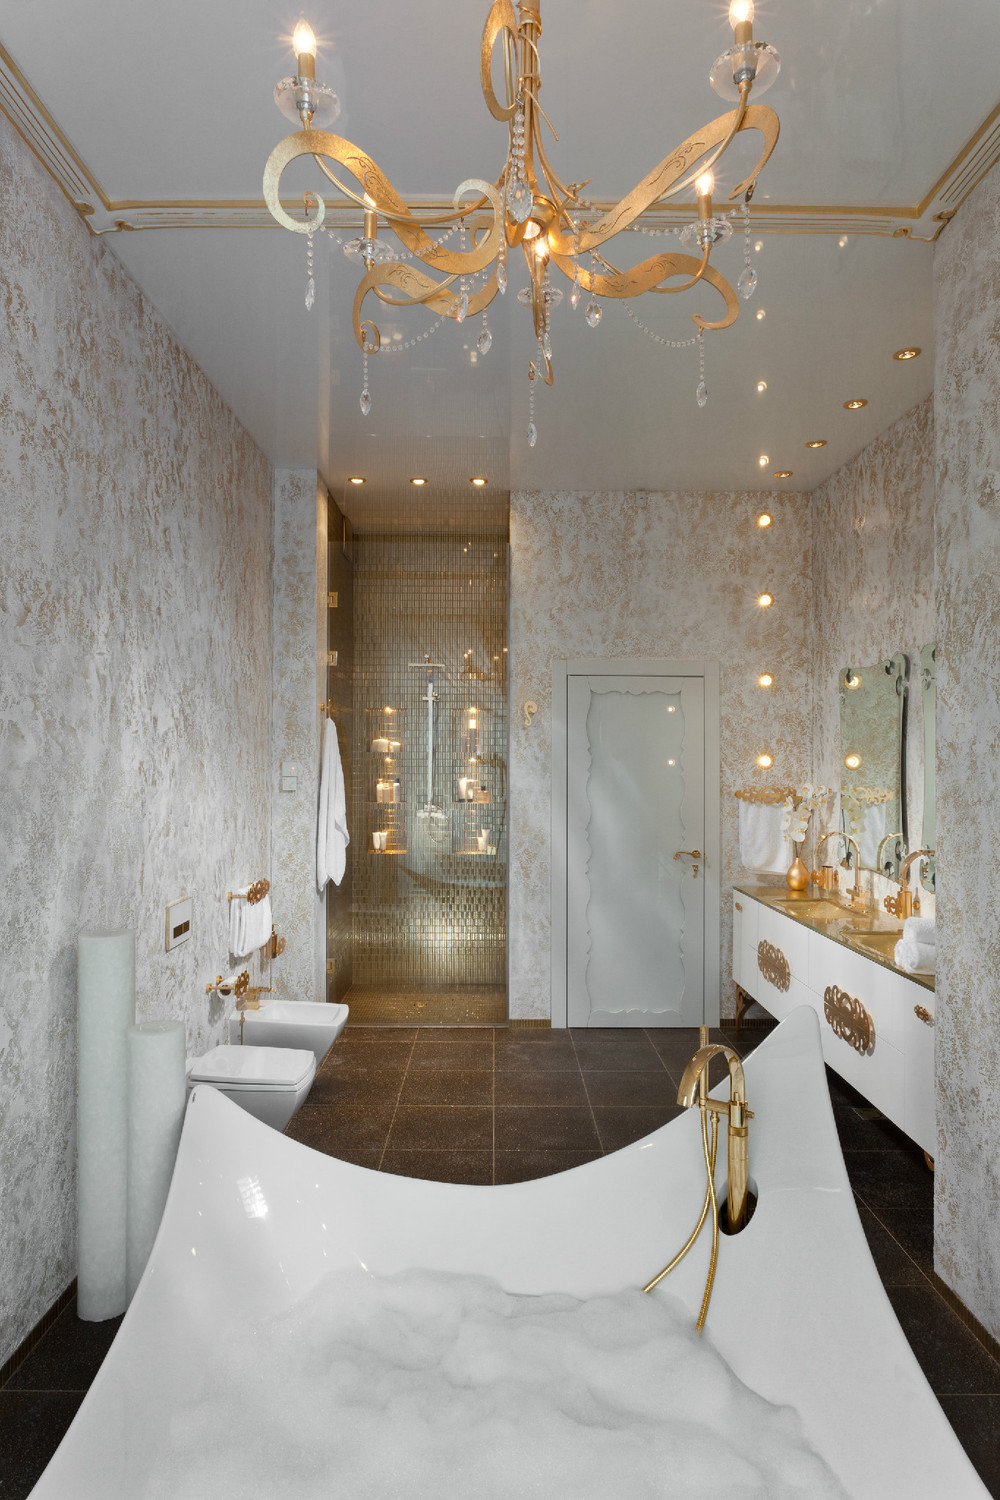 Bathroom Fixtures Gold gold white bathroom fixtures | interior design ideas.